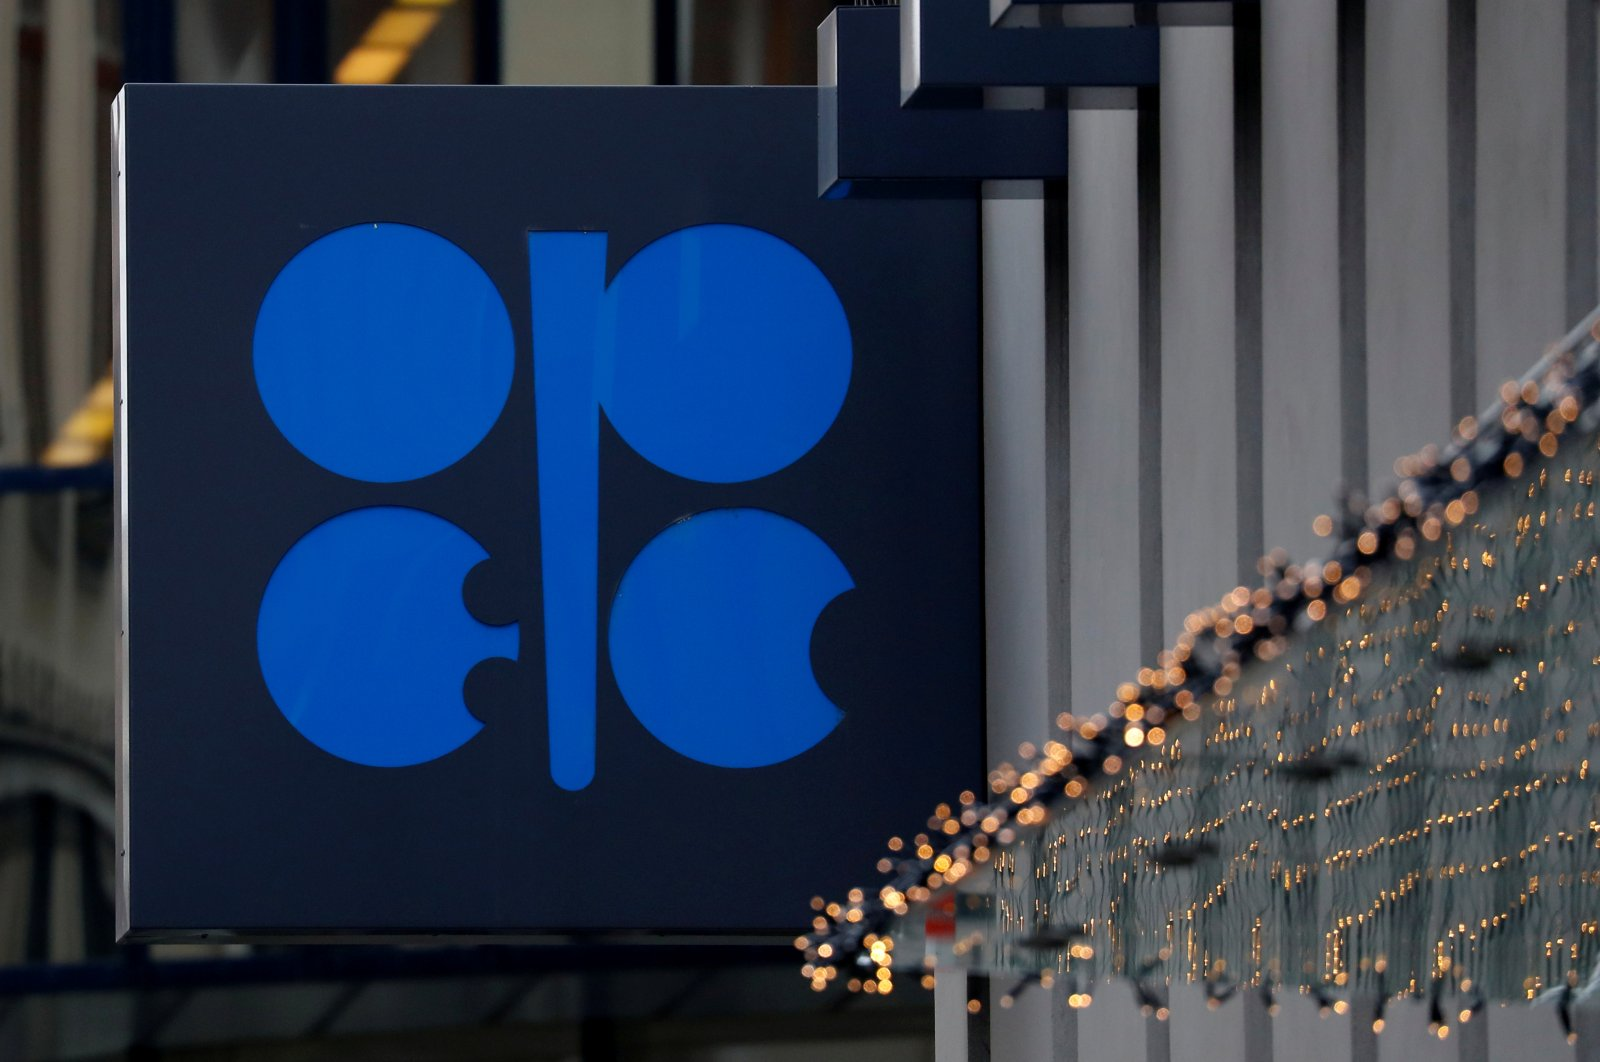 The logo of the Organization of the Petroleum Exporting Countries (OPEC) outside its headquarters in Austria, Dec. 6, 2019. (Reuters Photo)